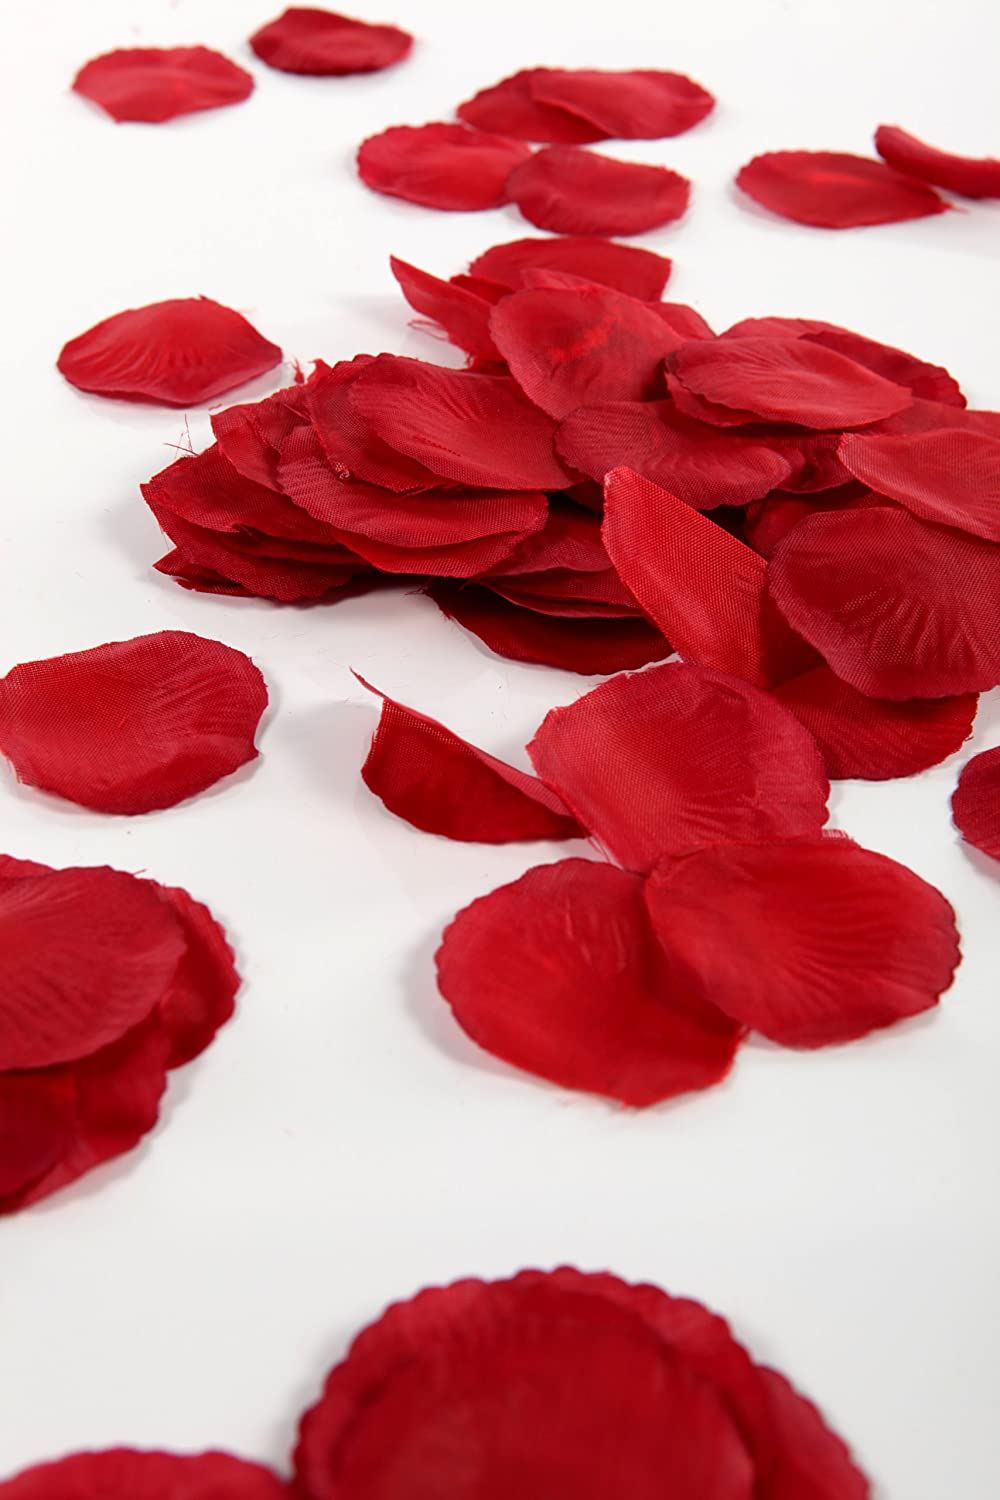 The gallery for red rose petals on bed for Individual rose petals